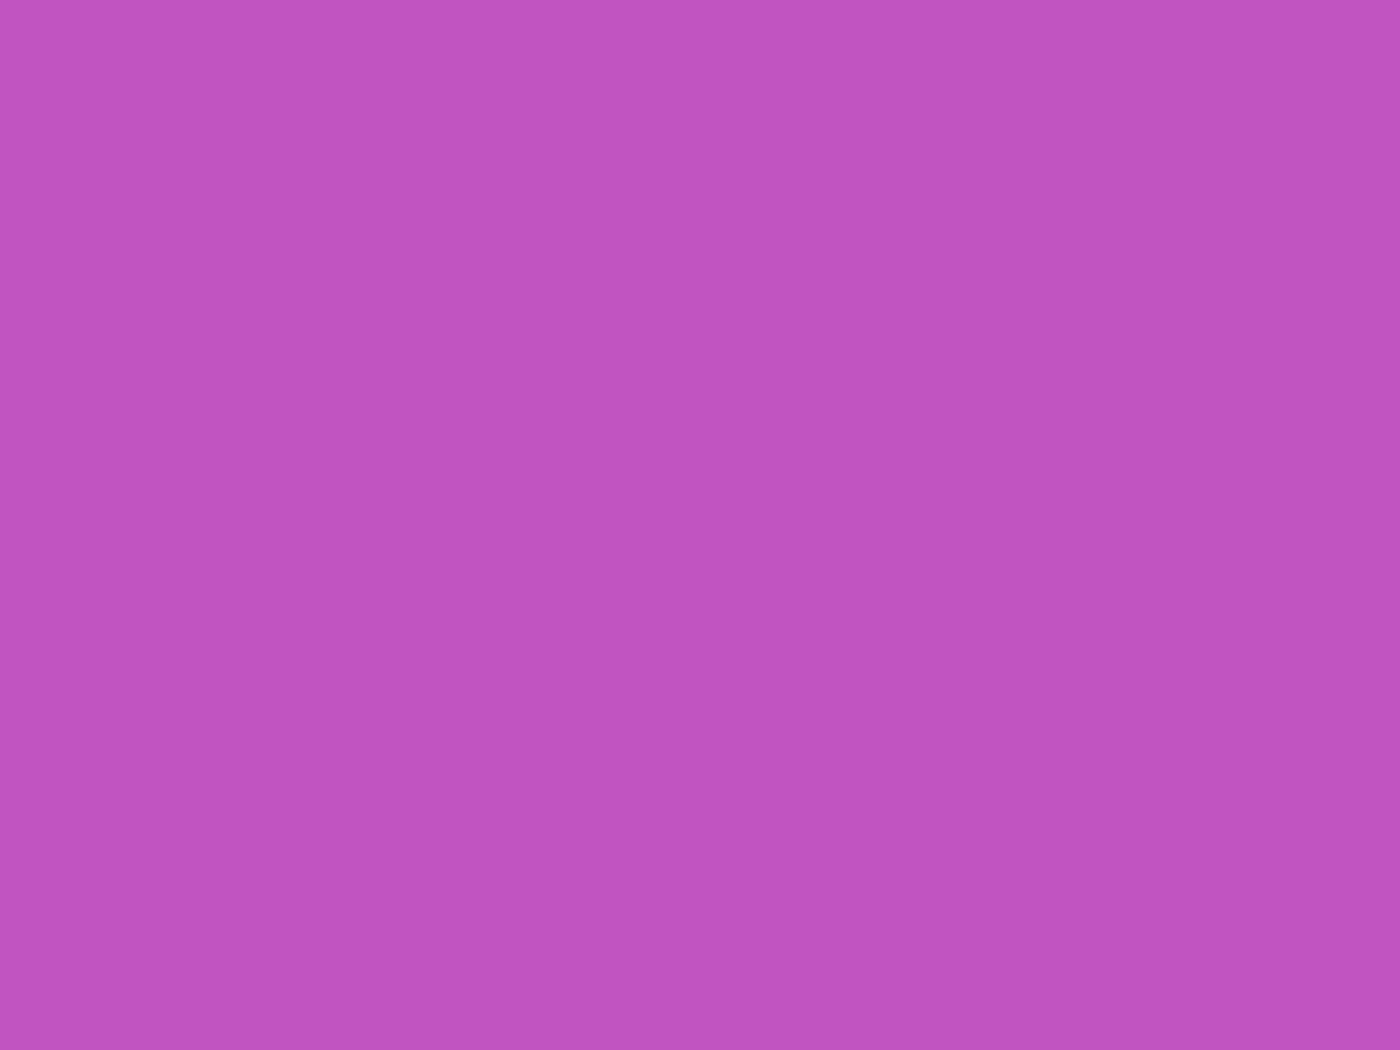 1400x1050 Deep Fuchsia Solid Color Background